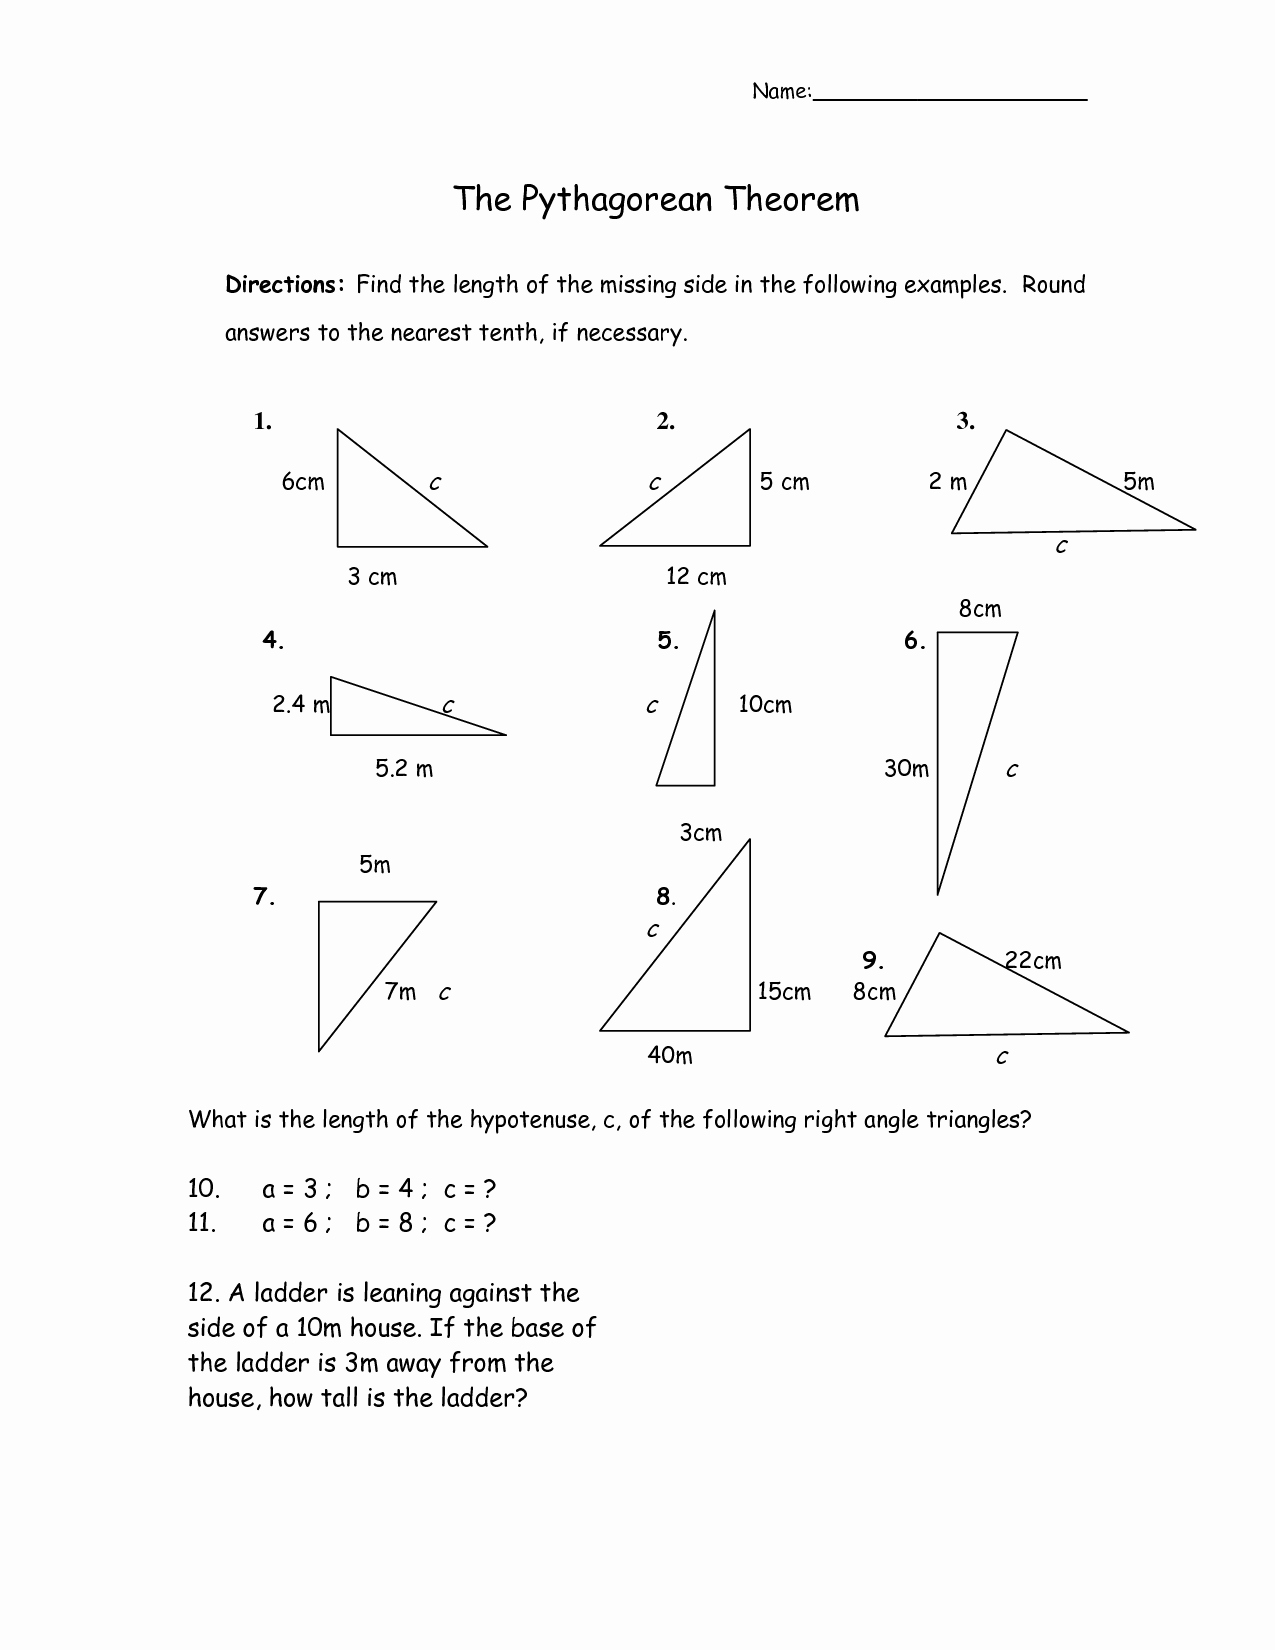 Pythagoras theorem Worksheet with Answers New 11 Best Of Fun Chemistry Worksheets Pythagorean